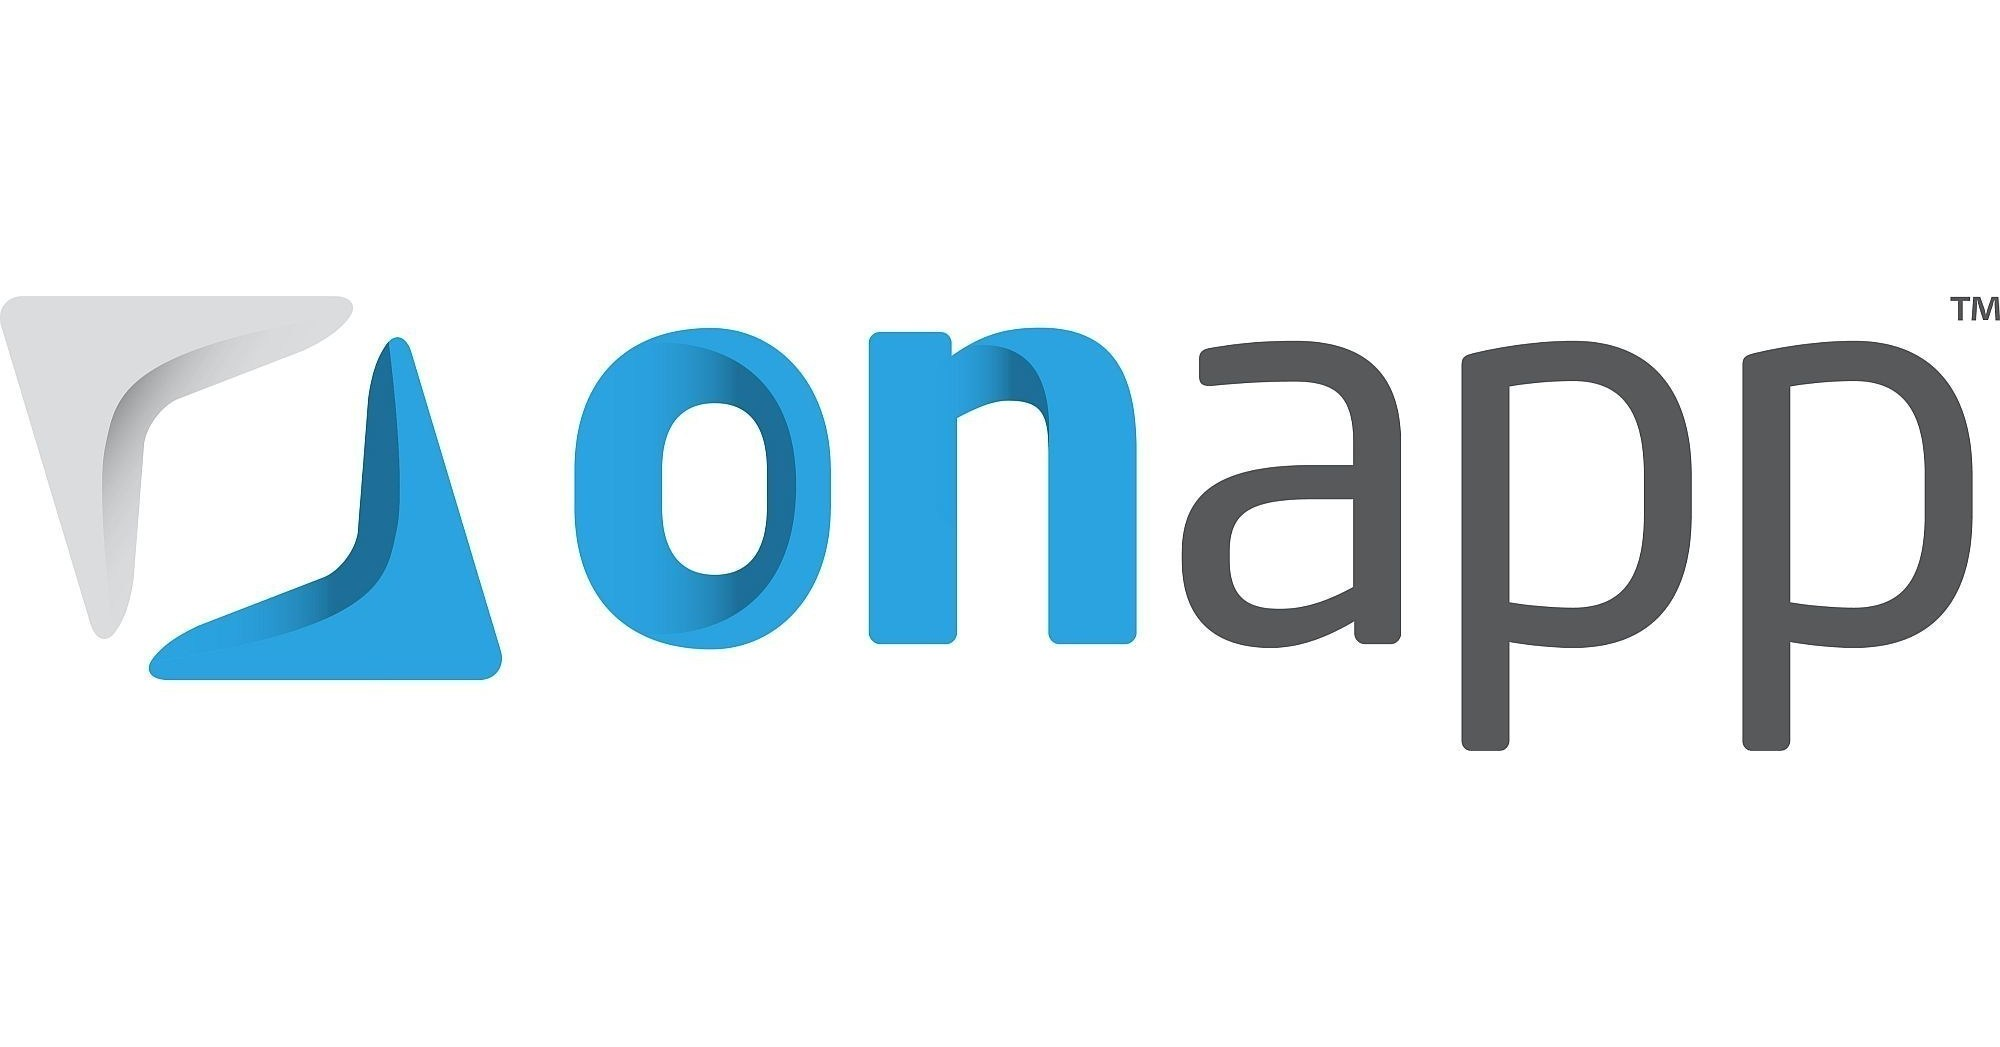 New Release of OnApp Brings Self-Service to VMware vCenter Clouds